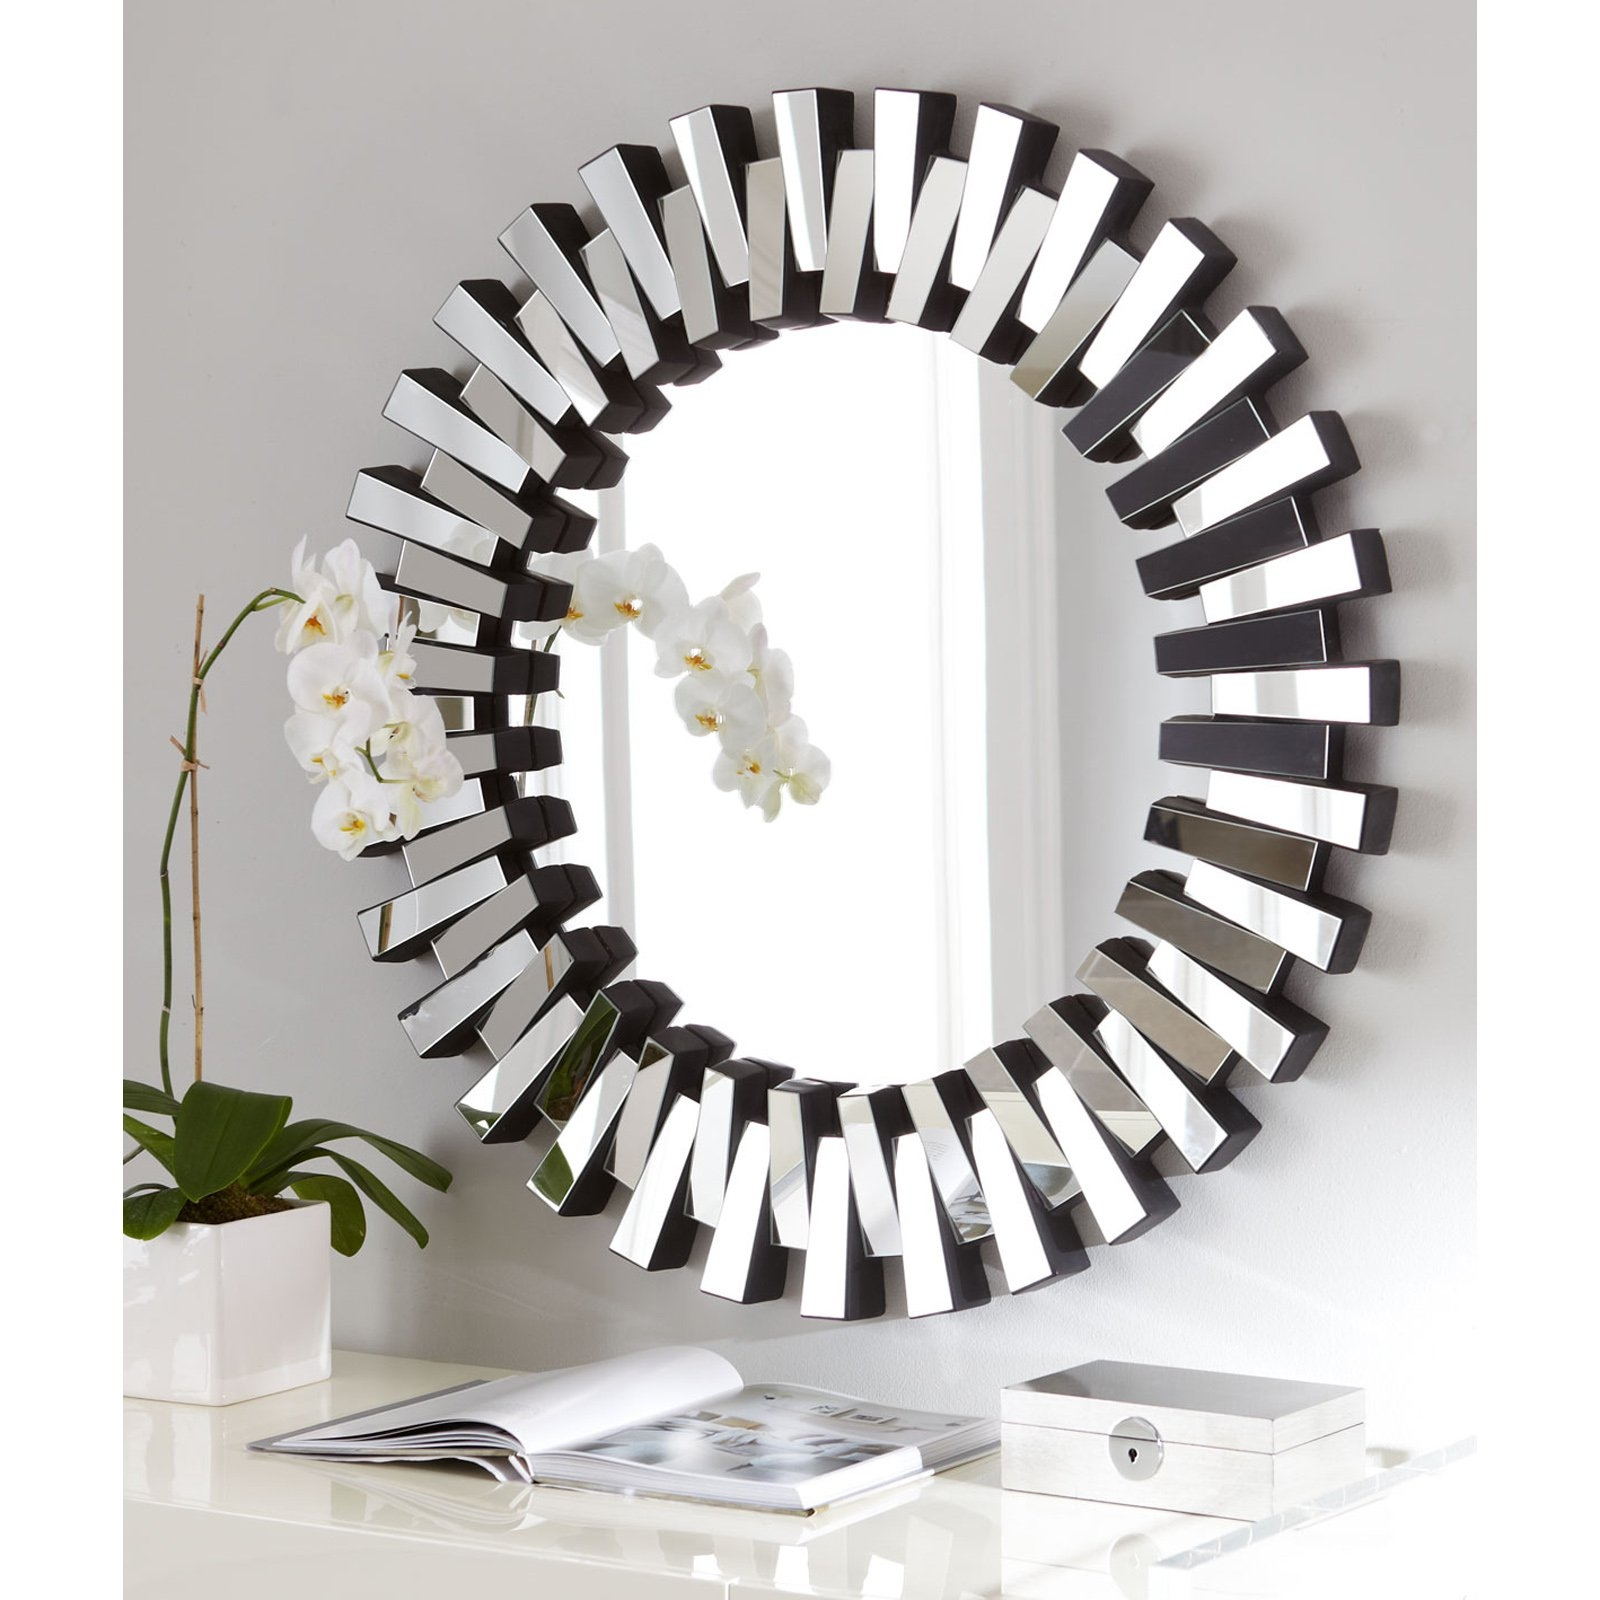 Afina Modern Luxe Round Wall Mirror 36 In Mirrors At Hayneedle Inside Mirror Circles For Walls (View 10 of 15)